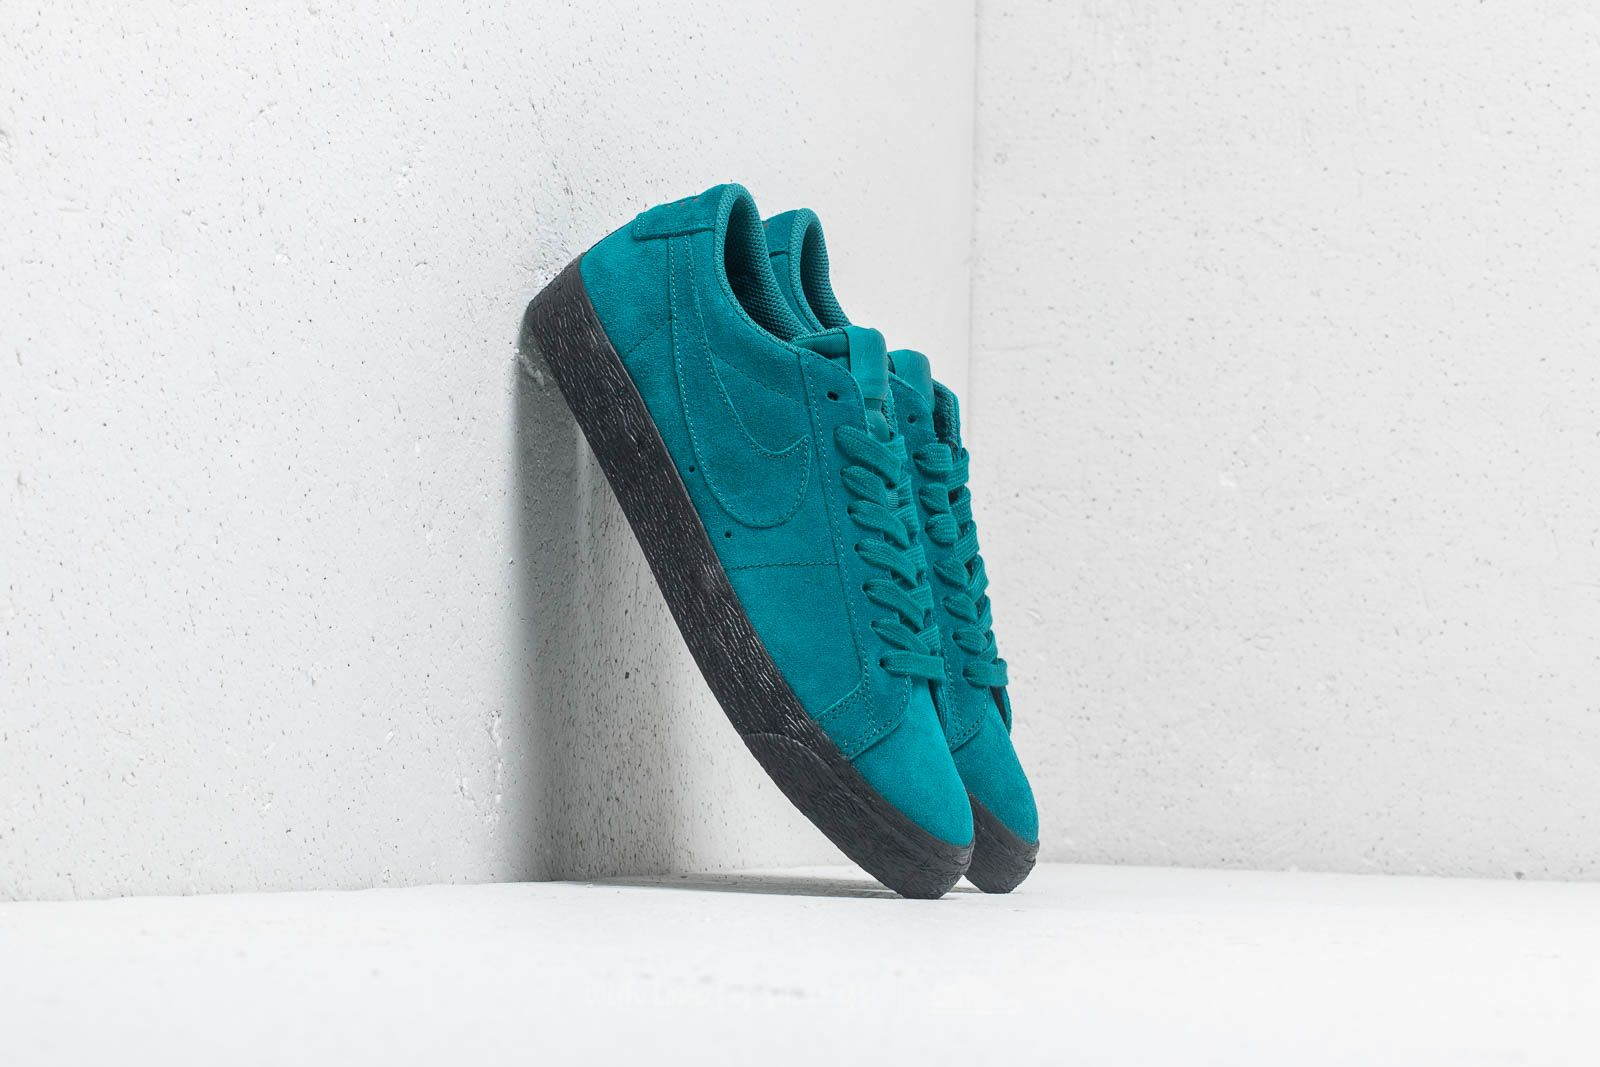 the best attitude c156f 63bd1 Nike SB Zoom Blazer Low Geode Teal  Geode Teal-Black at a great price